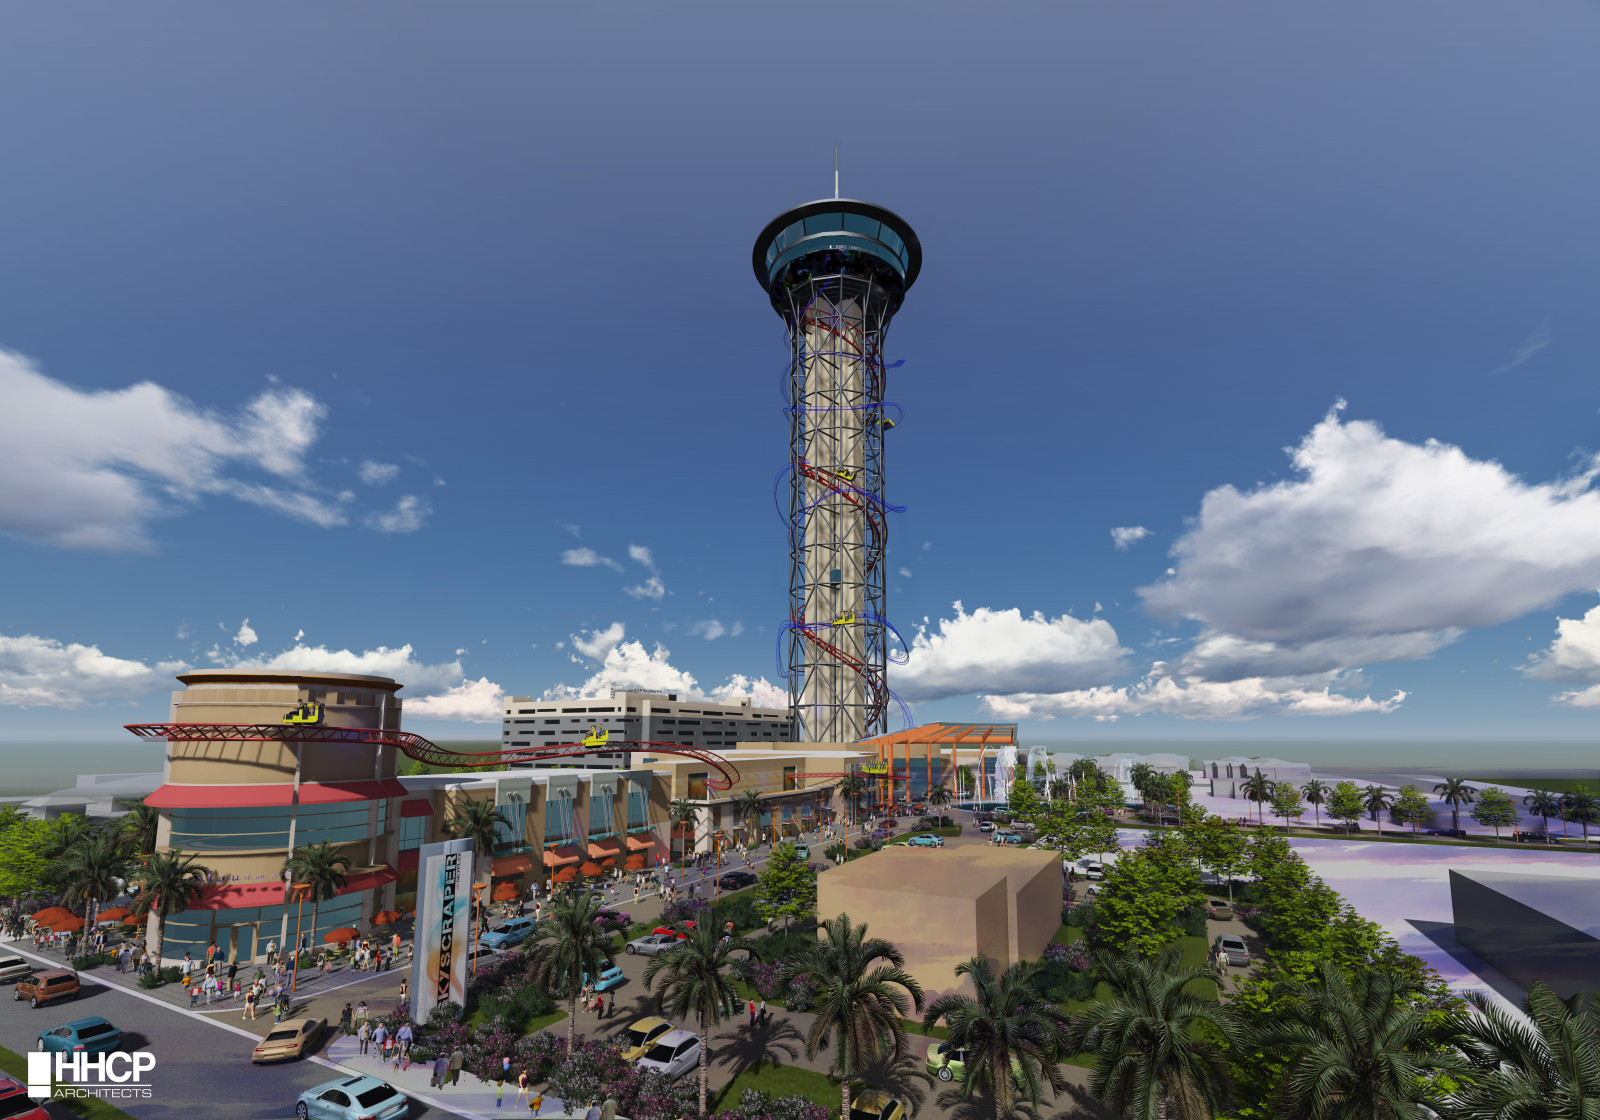 The Skyscraper at SKYPLEX